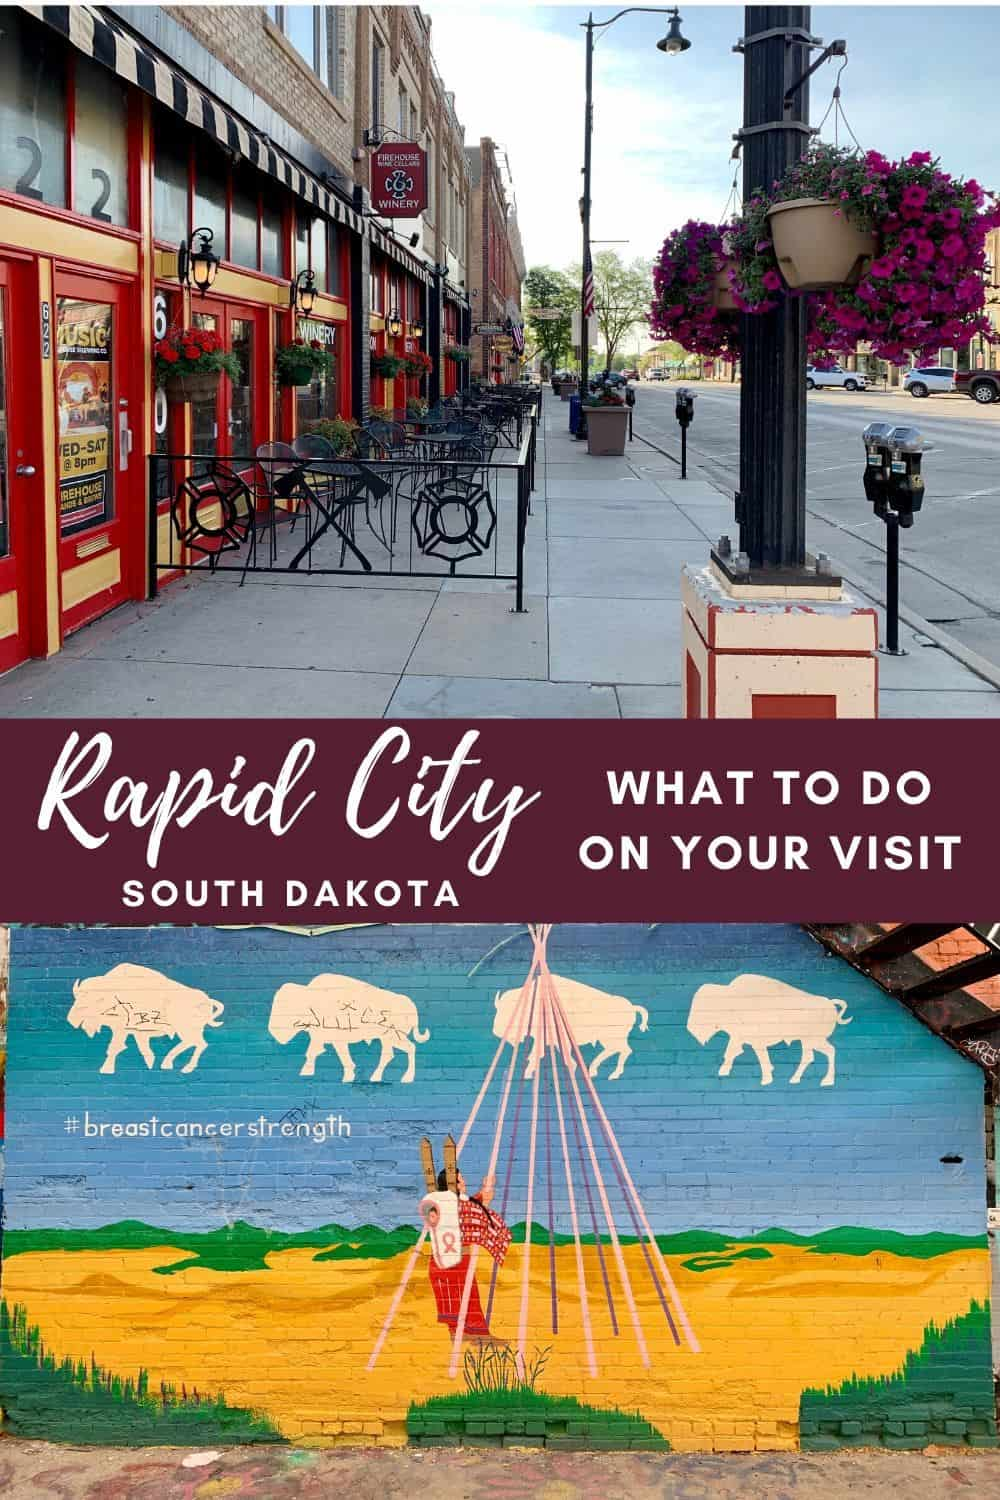 A First-Timer's Guide to Rapid City, South Dakota | Why Rapid City is a great base for exploring western South Dakota, things to do in Rapid City if you're visiting Badlands, Black Hills, or Custer State Park. This cute and patriotic little American city is a perfect weekend getaway or road trip! #rapidcity #southdakota #usa #roadtrip #weekendgetaway